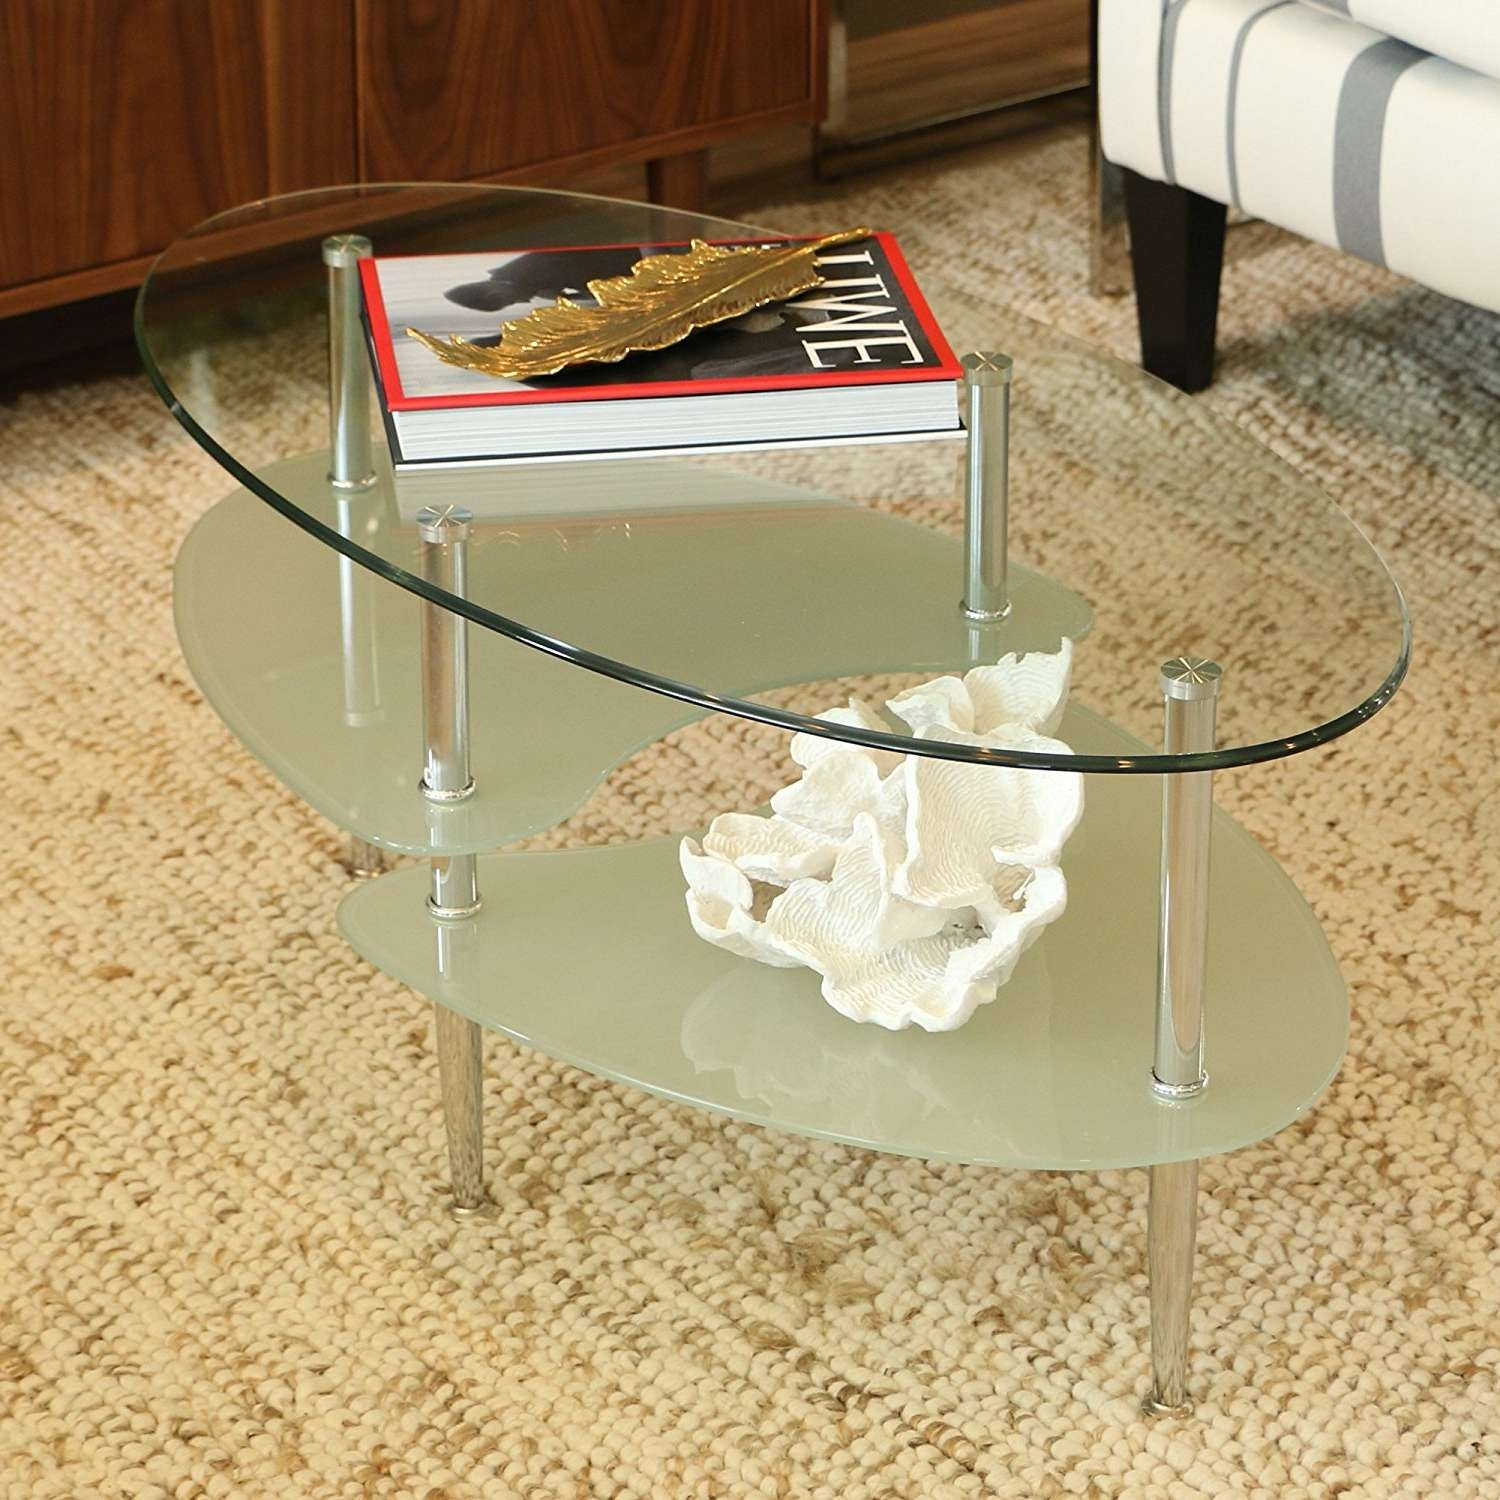 Oval Glass Coffee Table Contemporary Also Oval Glass Coffee Table Pertaining To Current Oval Shaped Glass Coffee Tables (View 13 of 20)